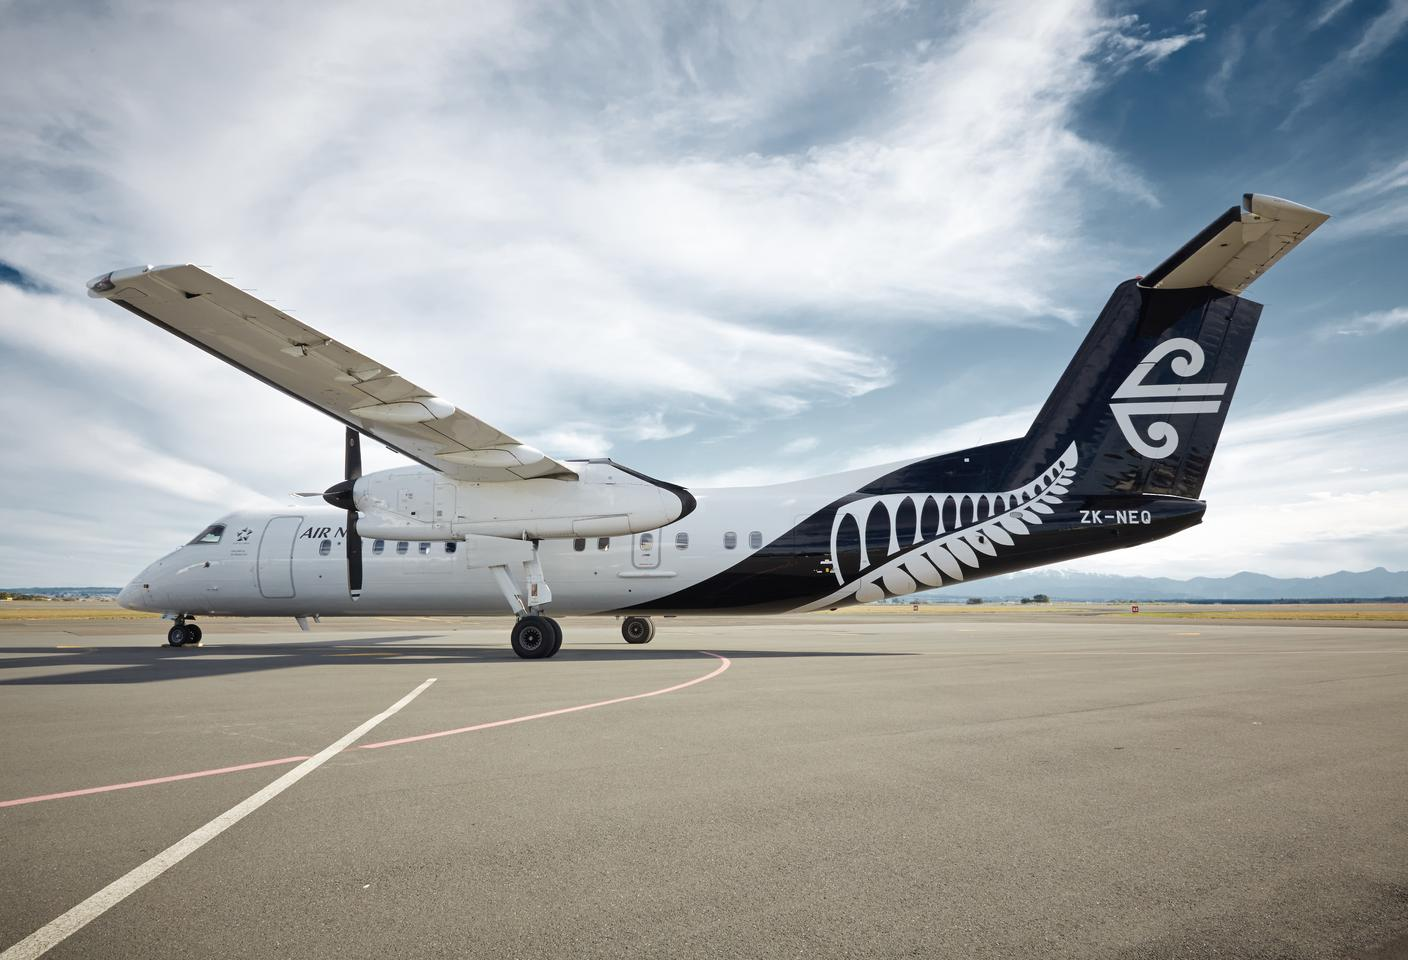 Air New Zealand is preparing to equip one of its Q300 passenger planes with hardware for environmental monitoring